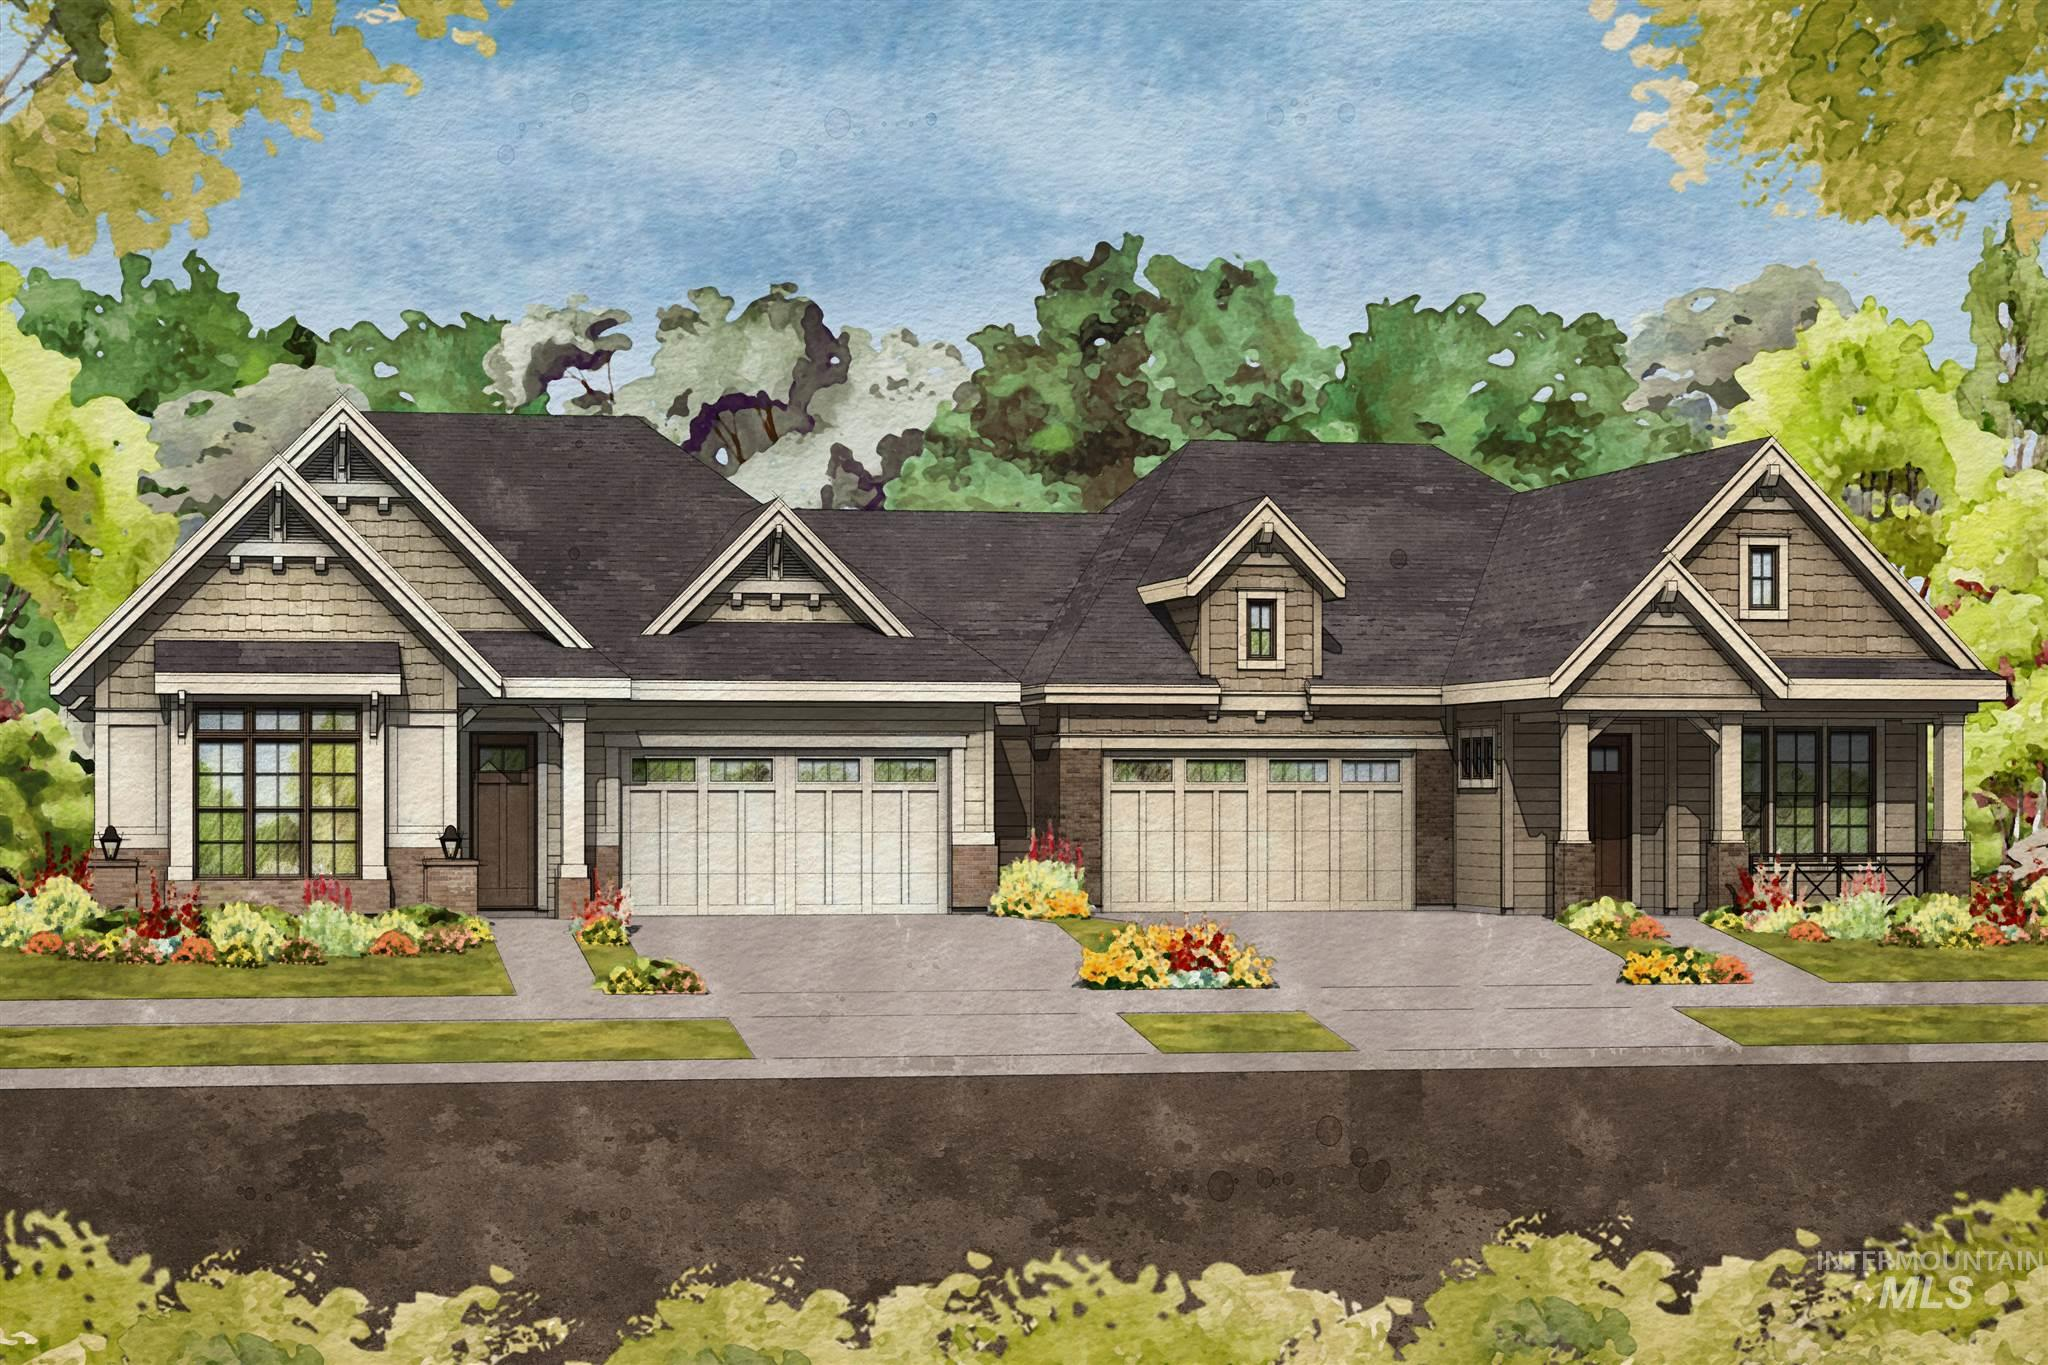 This efficiently designed floor plan offers function and charm.  The open concept makes this home  perfect for entertaining.  Relax in the beautiful  master suite with large walk-in closet. The beautiful kitchen features custom cabinets, walk-in pantry, Bosch stainless steel appliances and Kohler throughout a Brighton standard! 100% Energy Star Certified